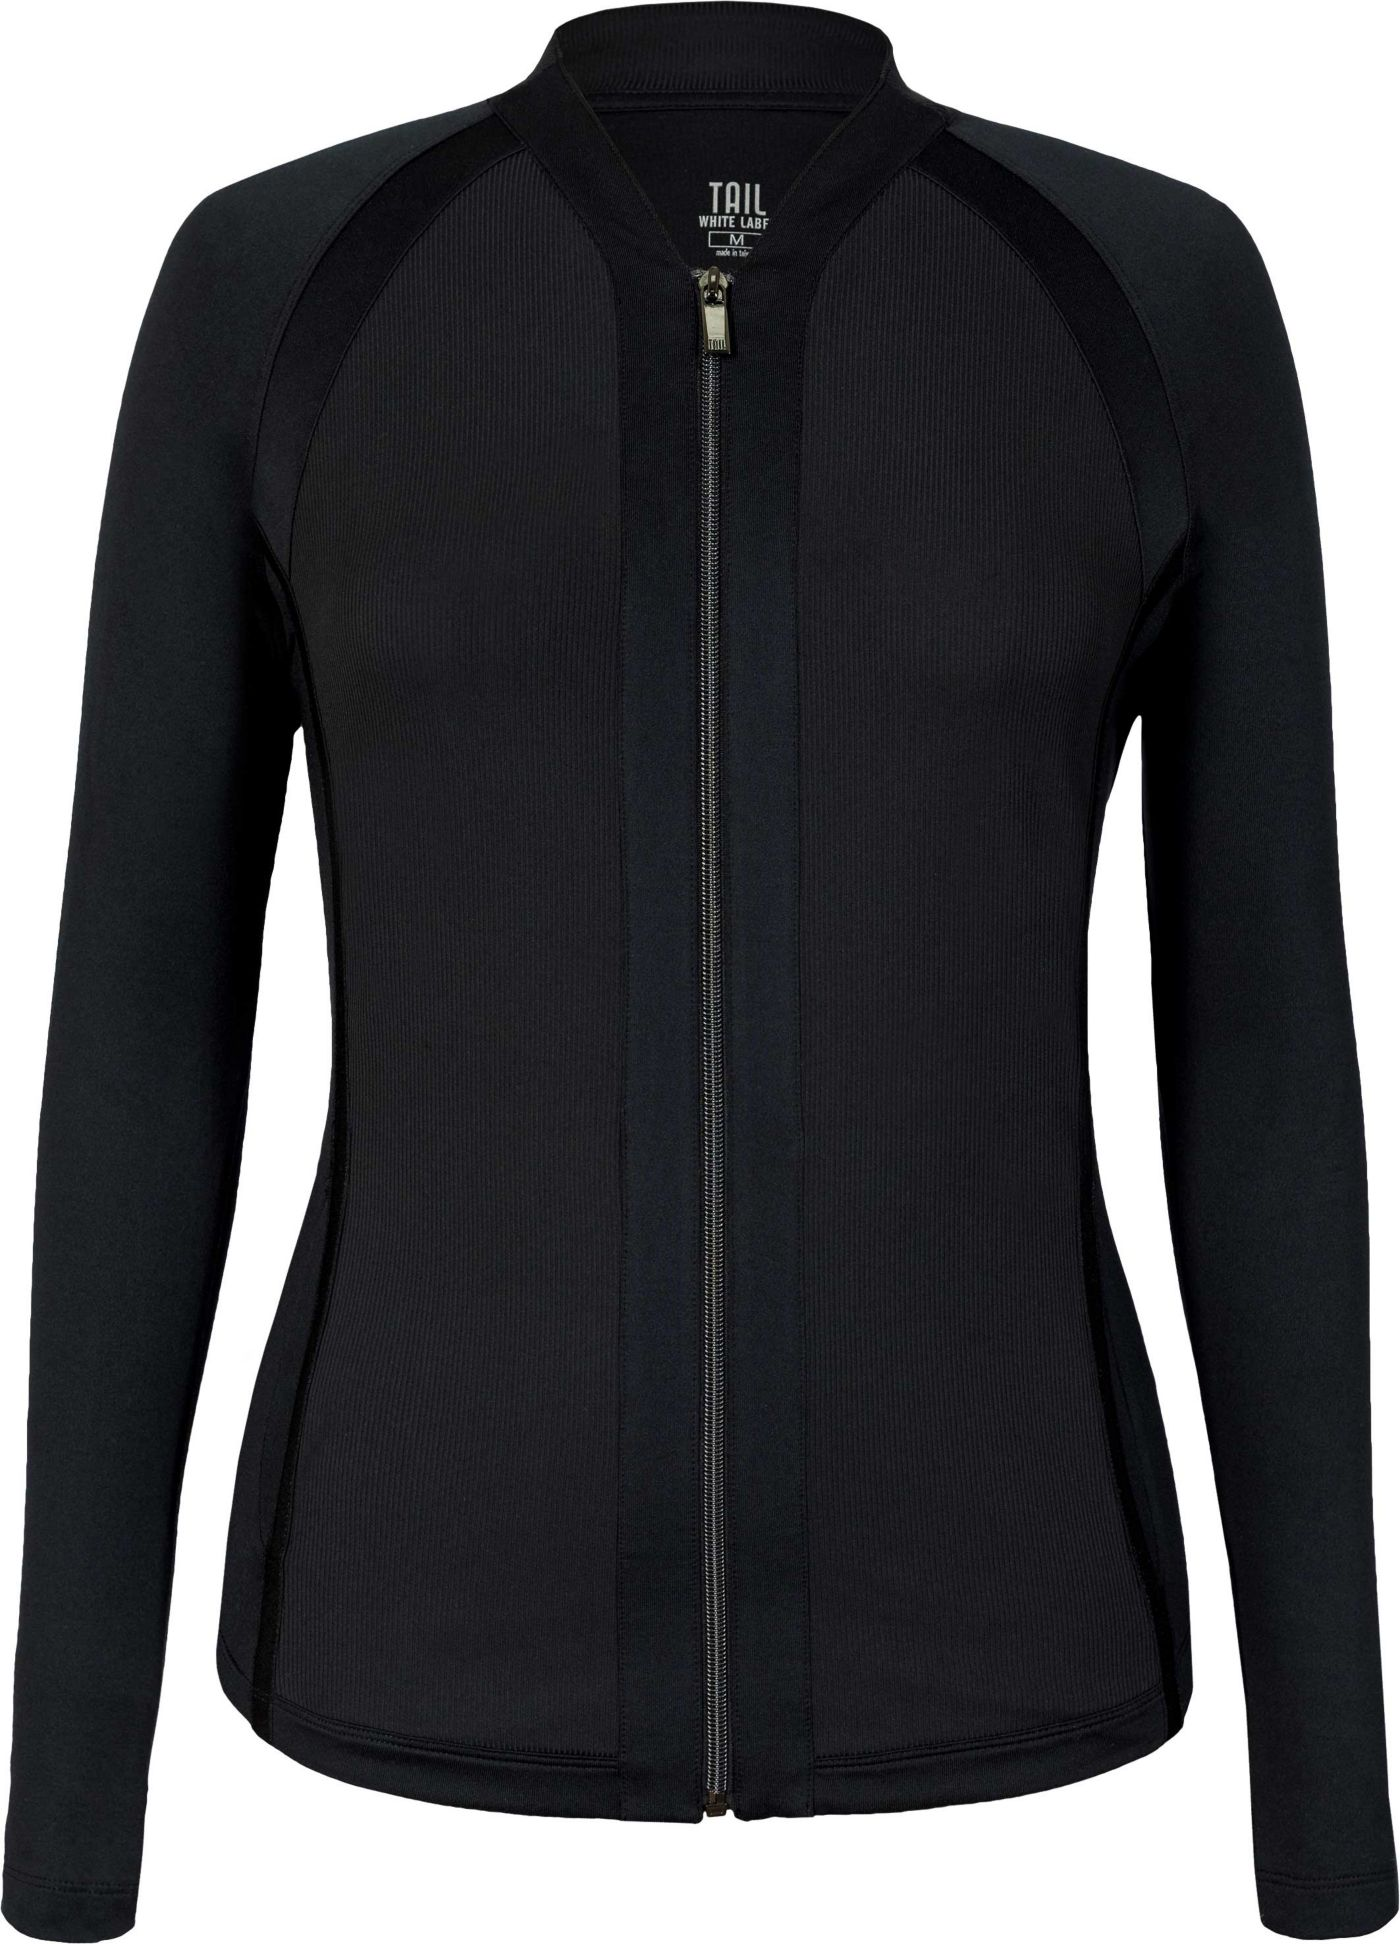 Tail Women's Raglan Full-Zip Golf Jacket